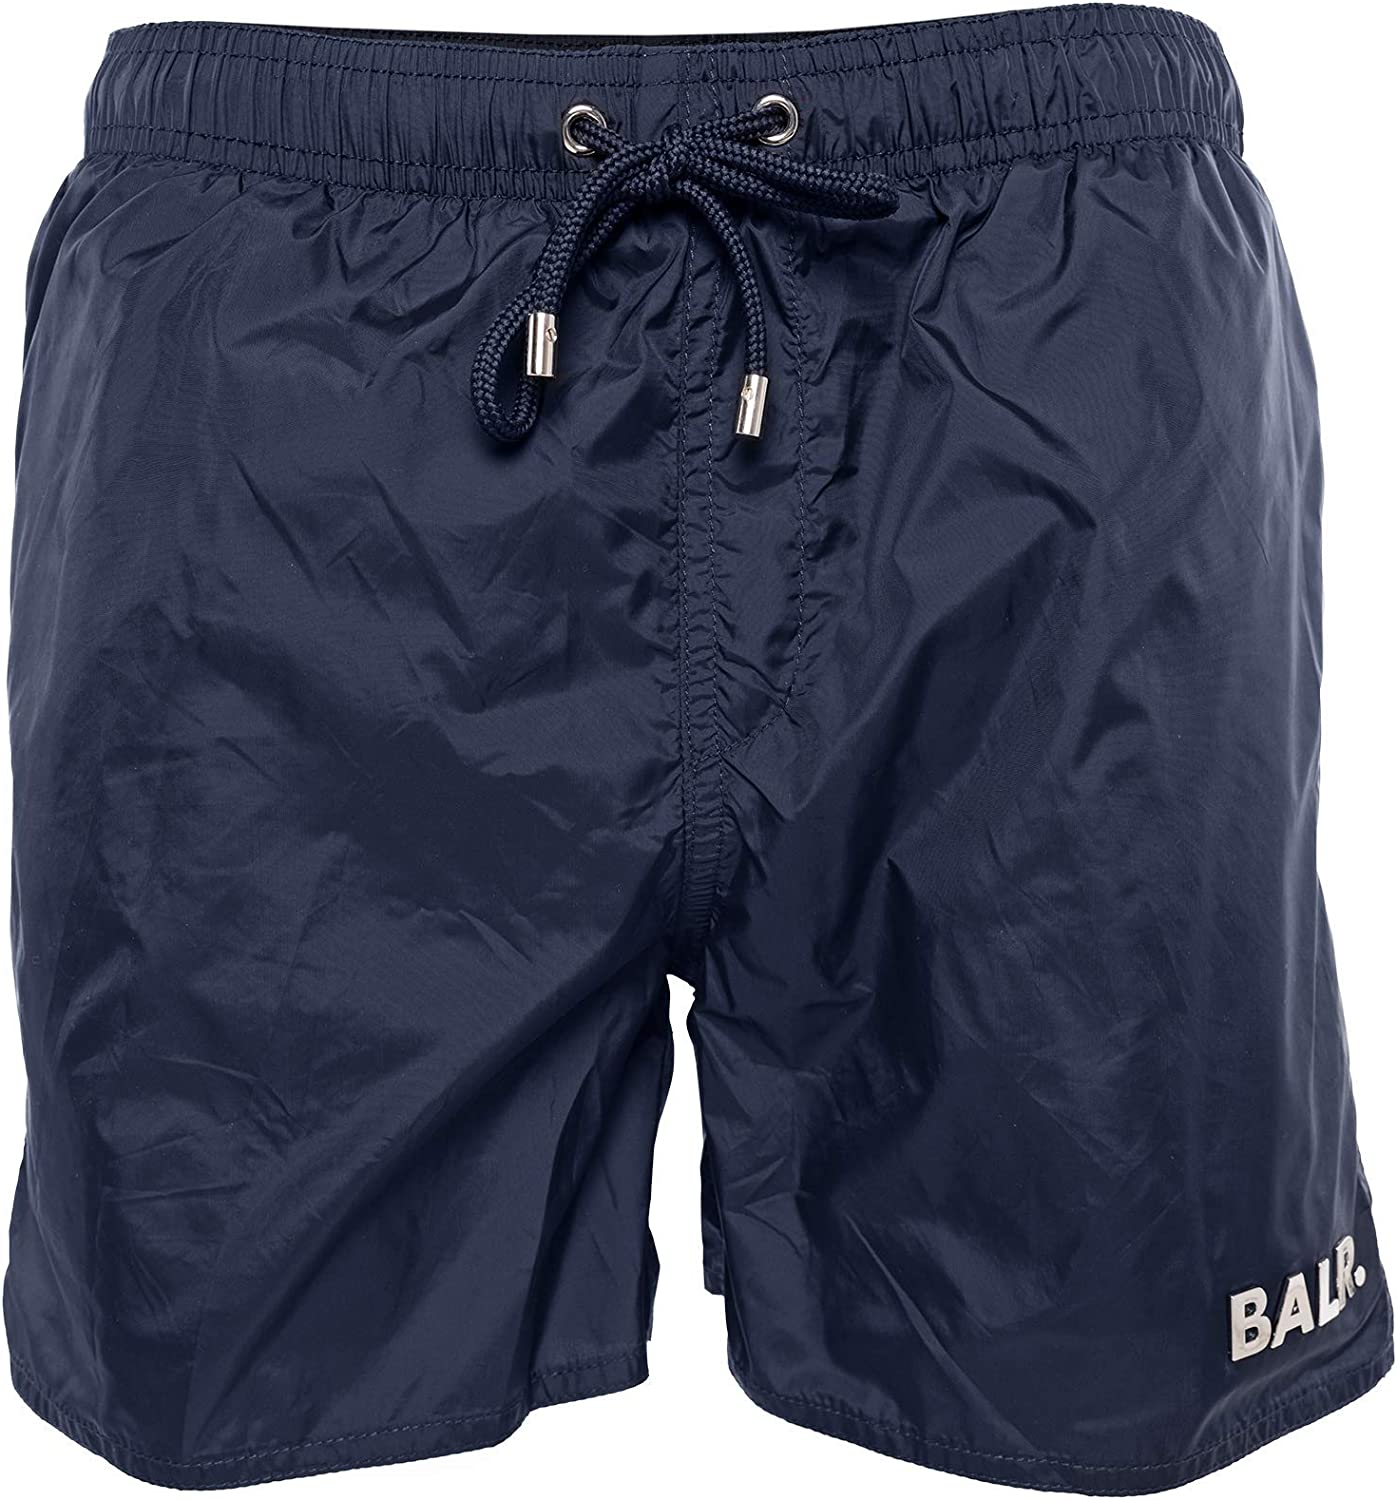 BALR. Classic Swim Shorts Athletic Fit with Quickdry Shell - Black